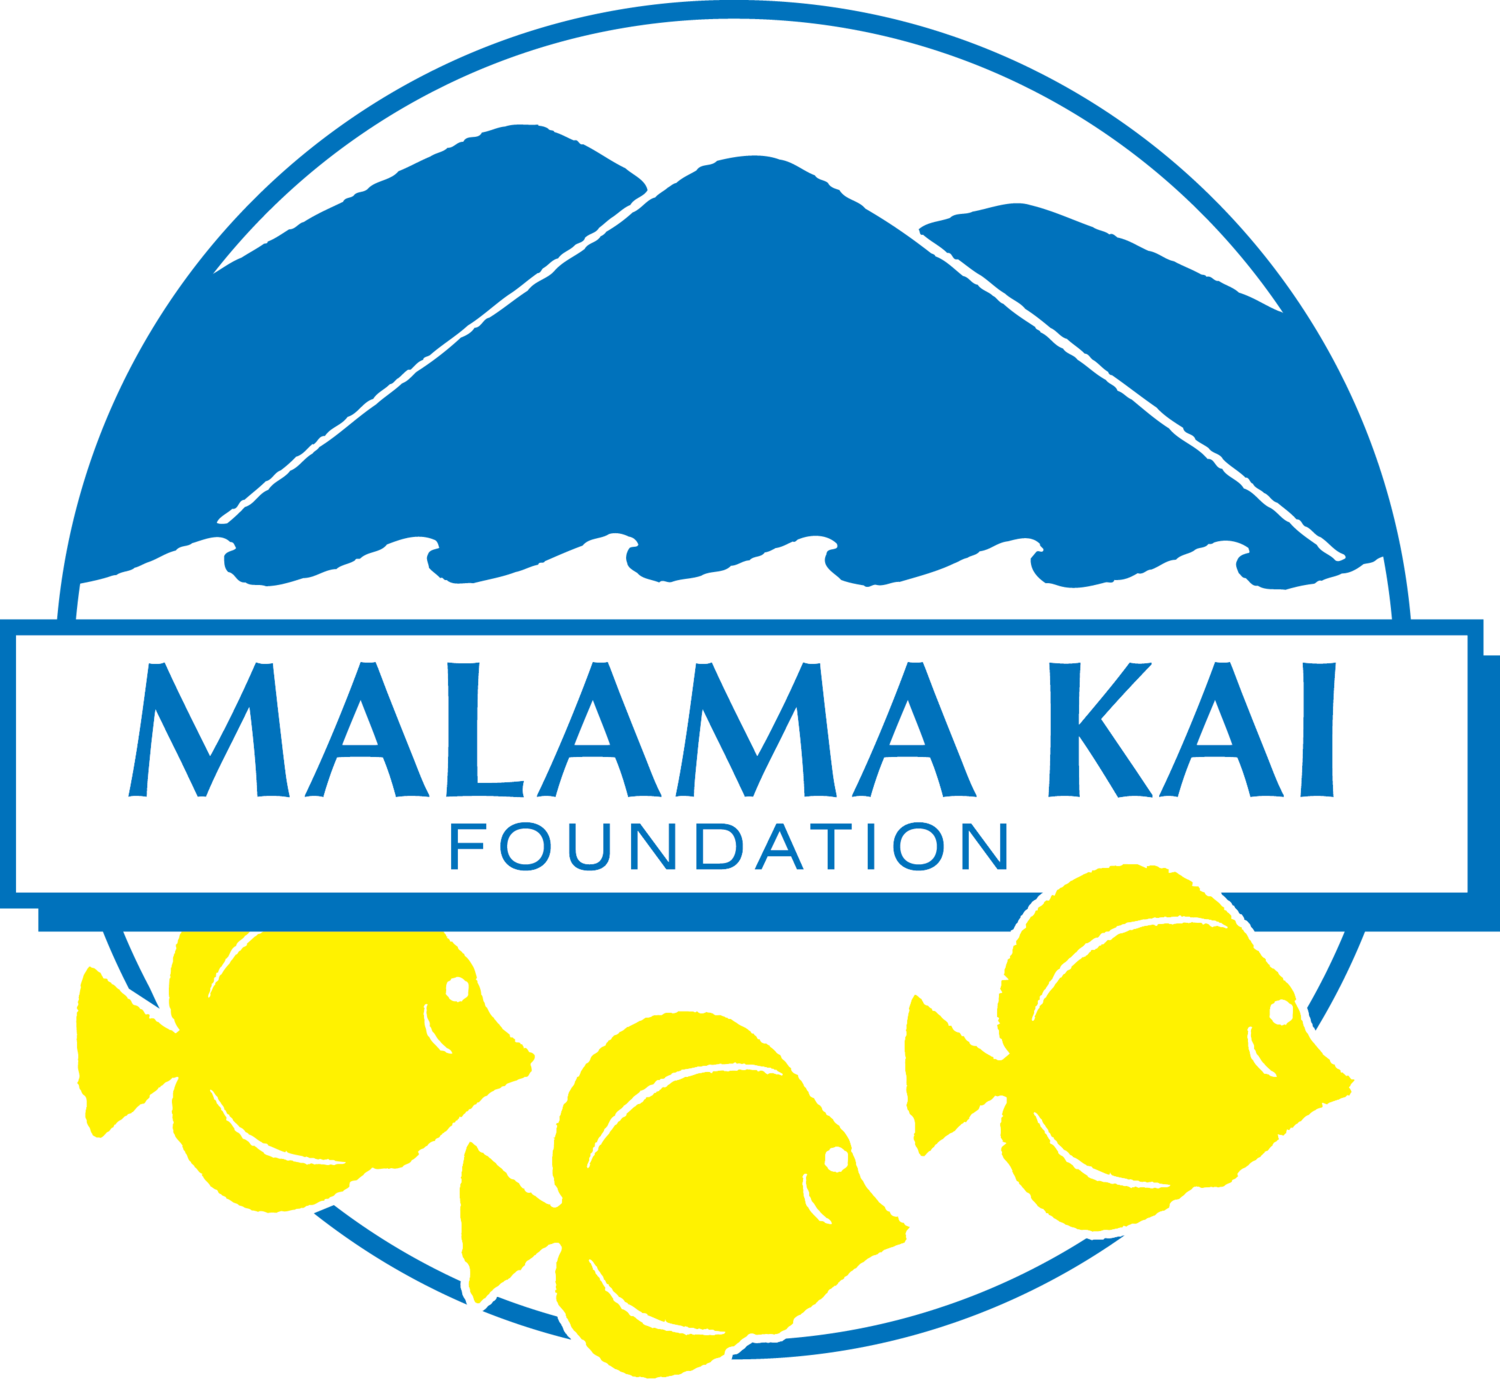 Malama Kai Foundation